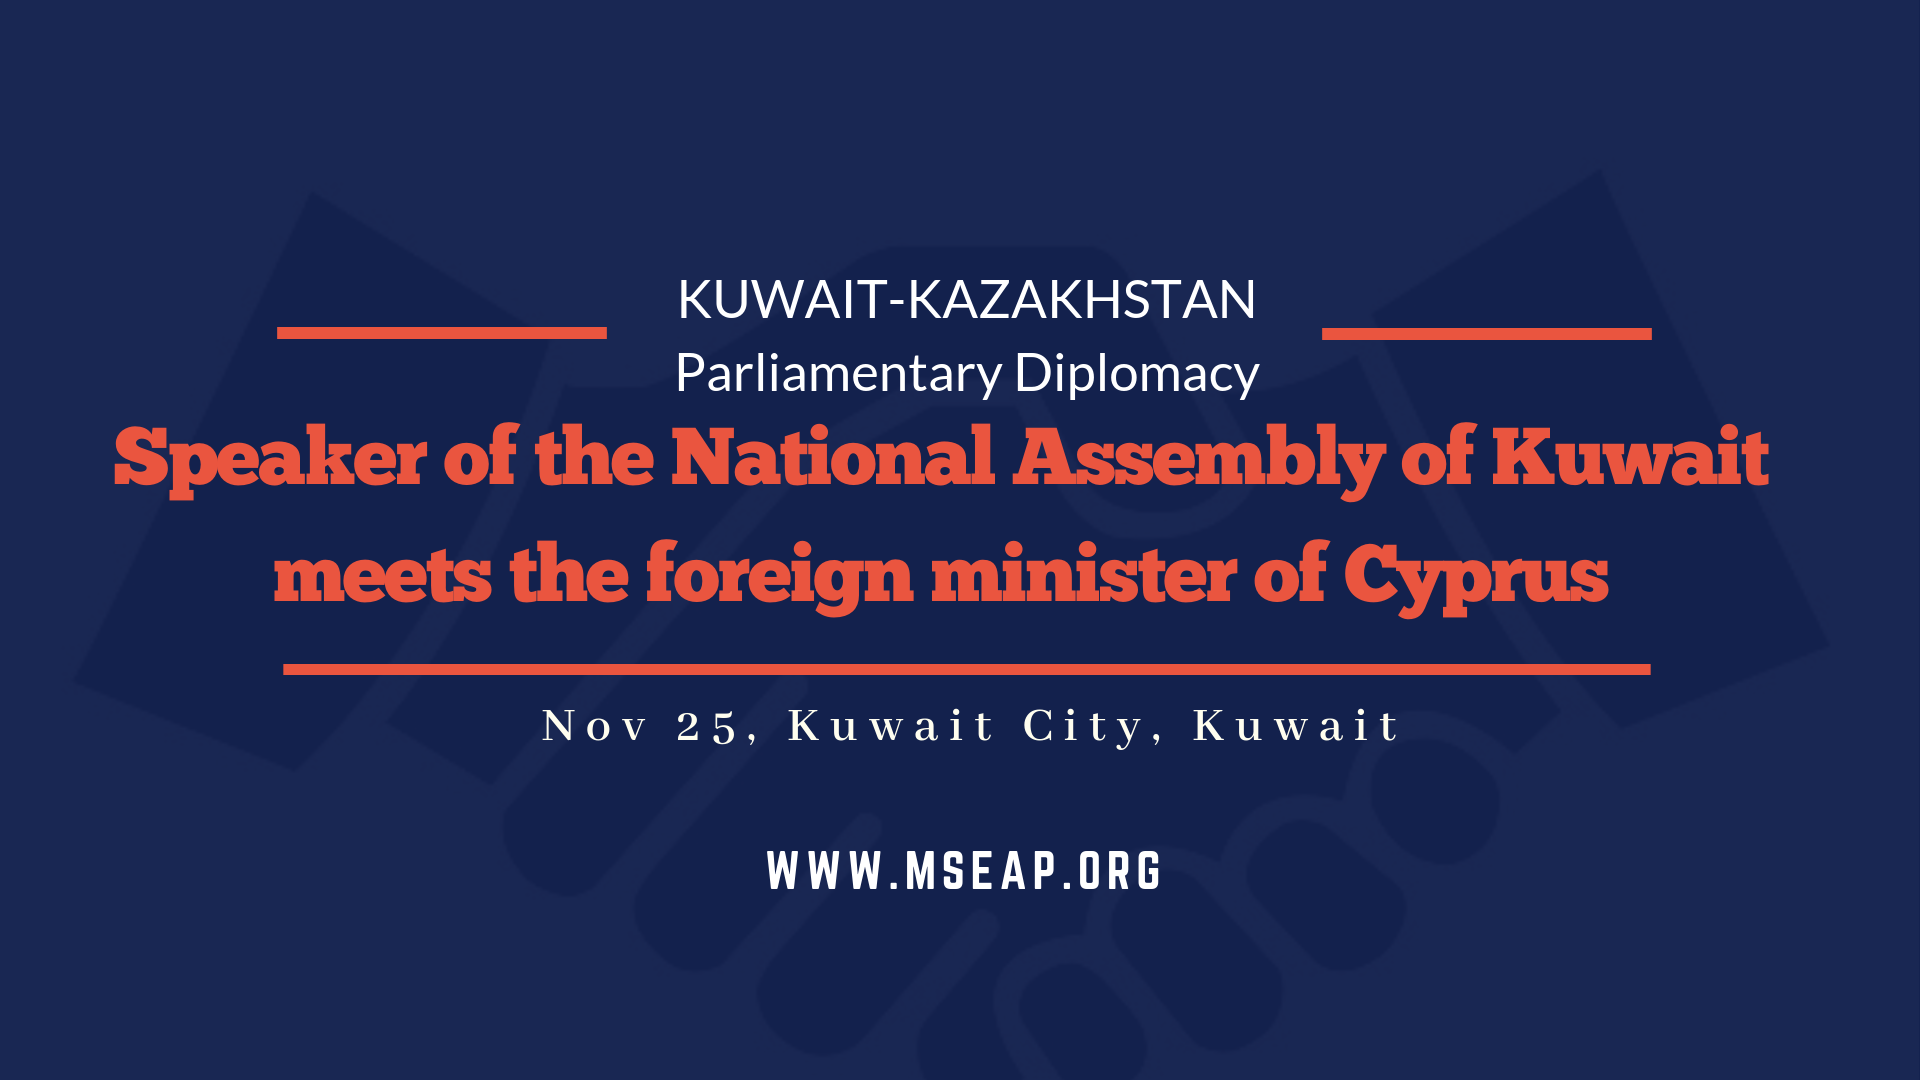 Speaker of the National Assembly of Kuwait receives an official visit from the foreign minister of Cyprus